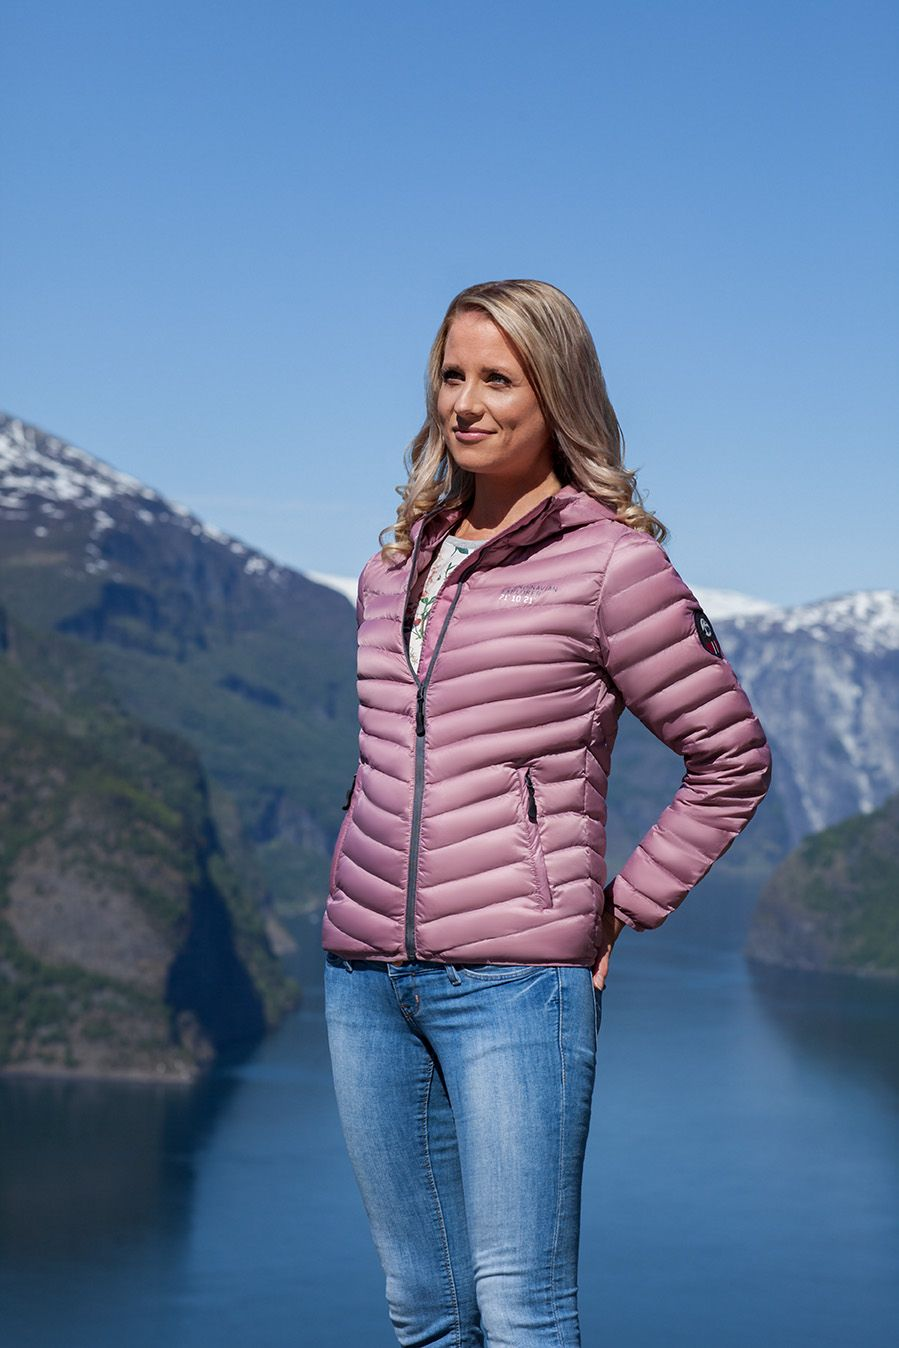 Newin 2018 The Old Pink Down Jacket By Scandinavian Explorer Is Ultra Light And With An Added Touch Of Style In Its Glossy Finish Get Yours In Our Norwegia